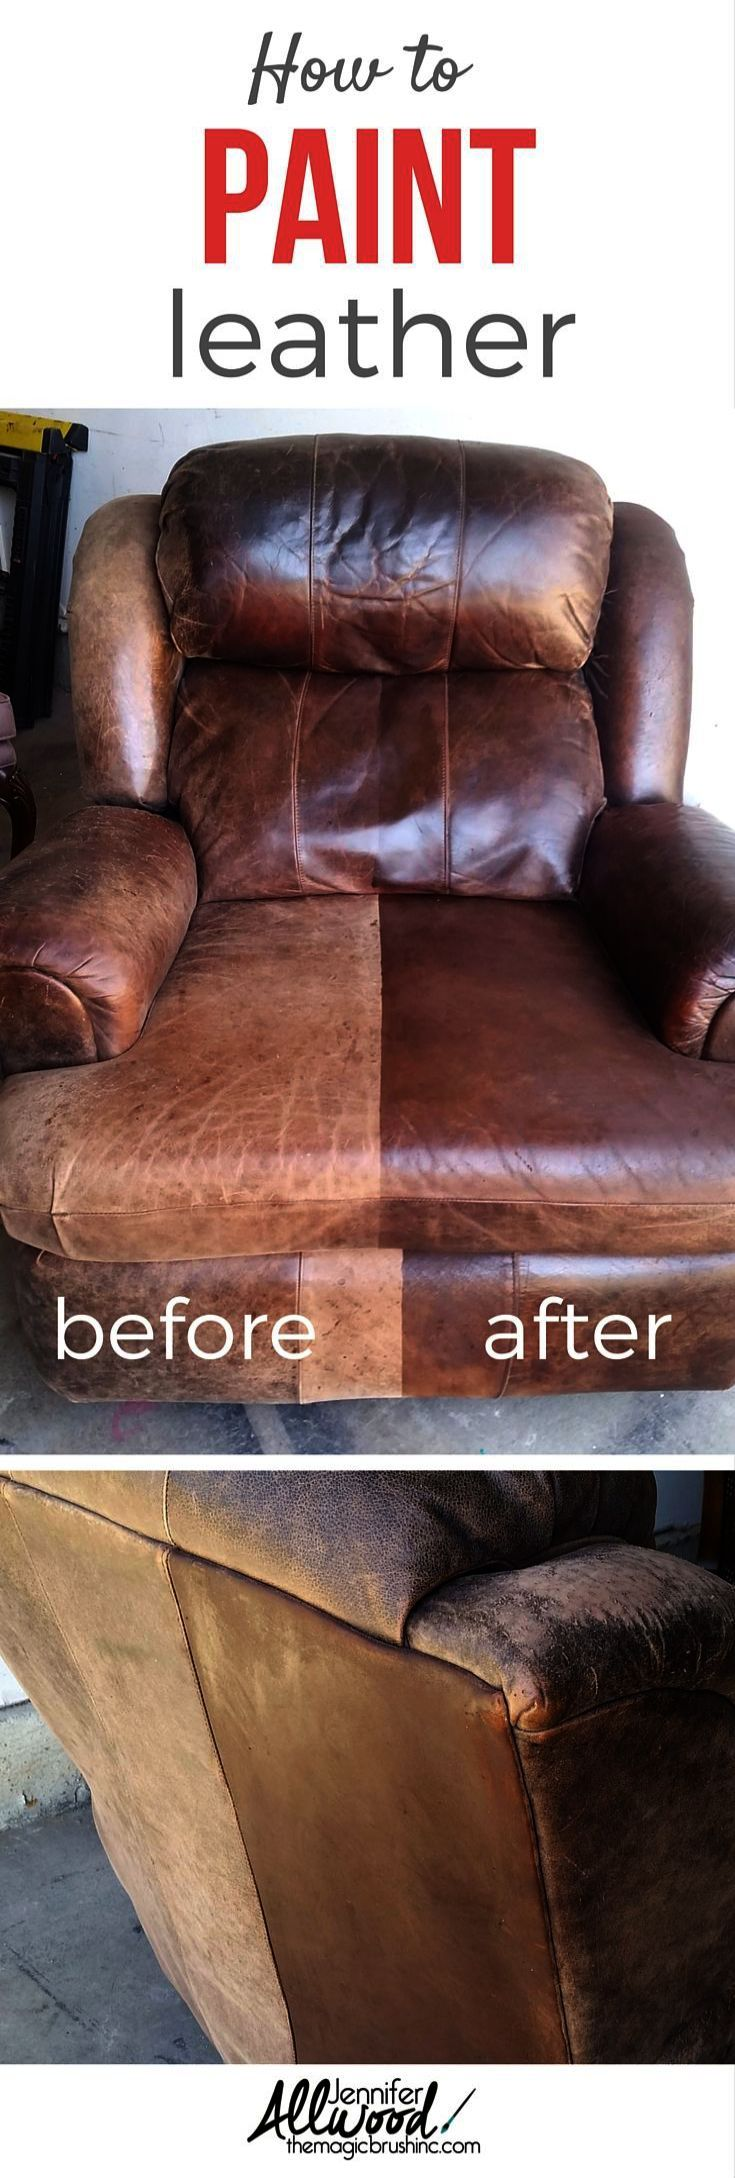 Furniture Stores Delaware Most Furniture Row Glassdoor Her Furniture Upholstery Repair Stockport O Painting Leather Painting Fabric Furniture Leather Furniture